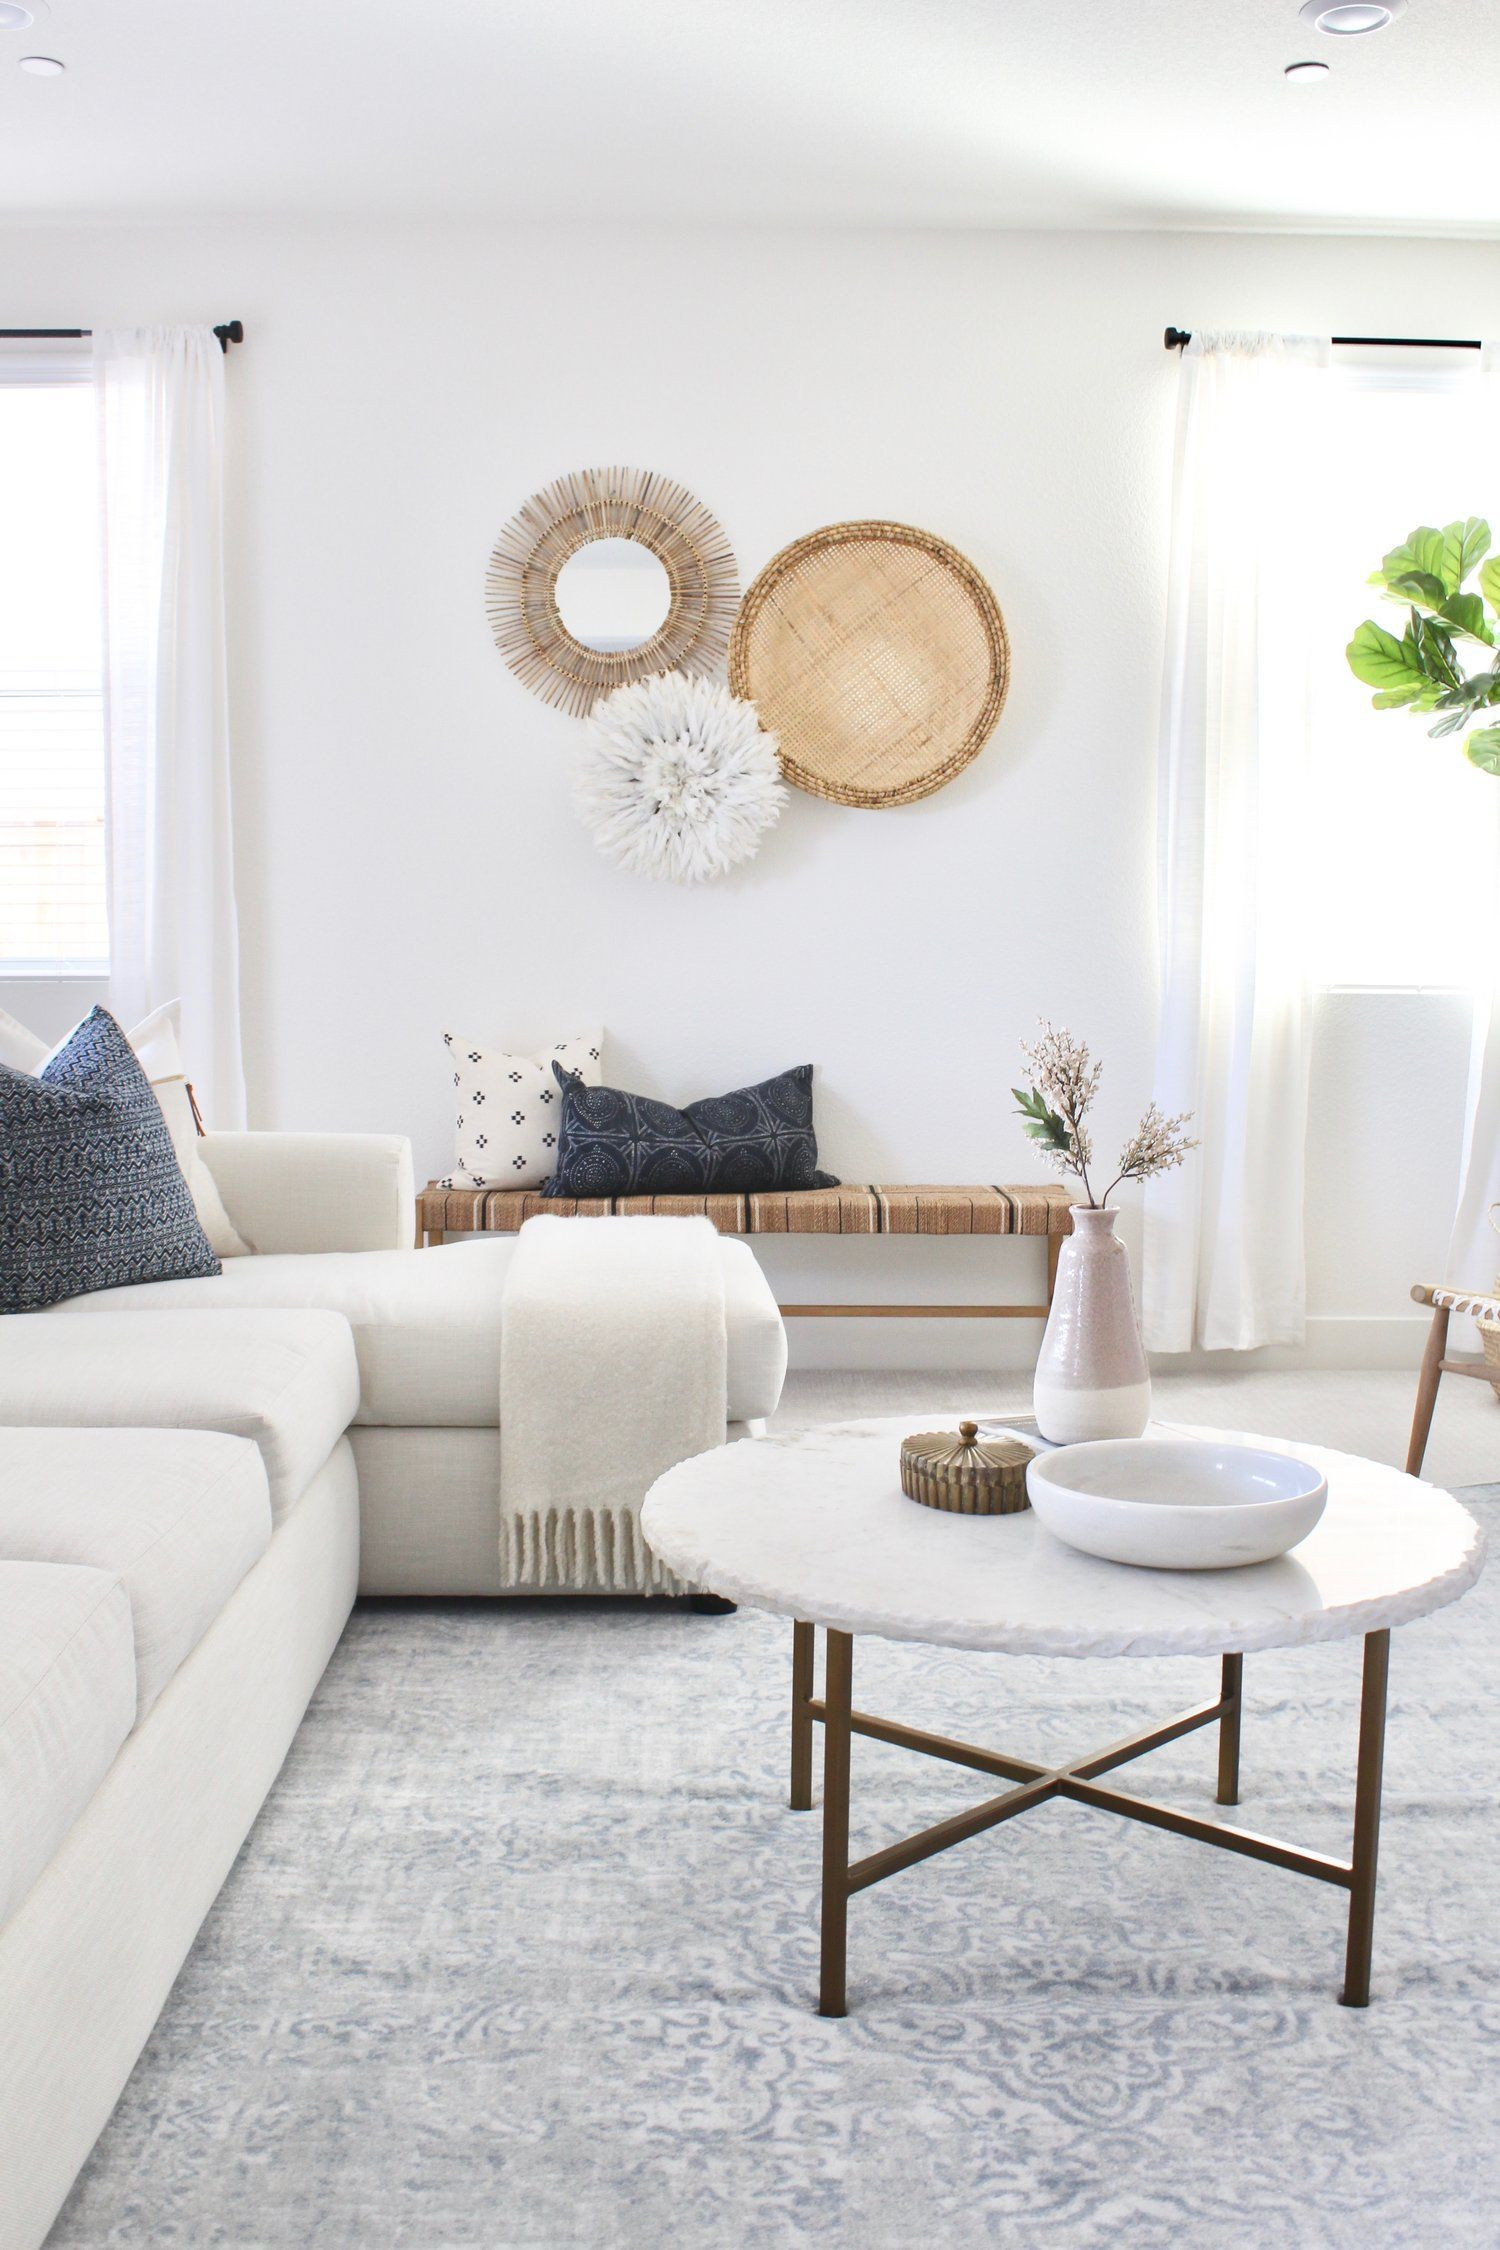 Needing a little home update with extra attention to your home+life needs? Check out our Post Place project living room with modern coastal decor and an airy white couch and walls. #livingroom #whiteinterior #westelm #wall decor living room modern